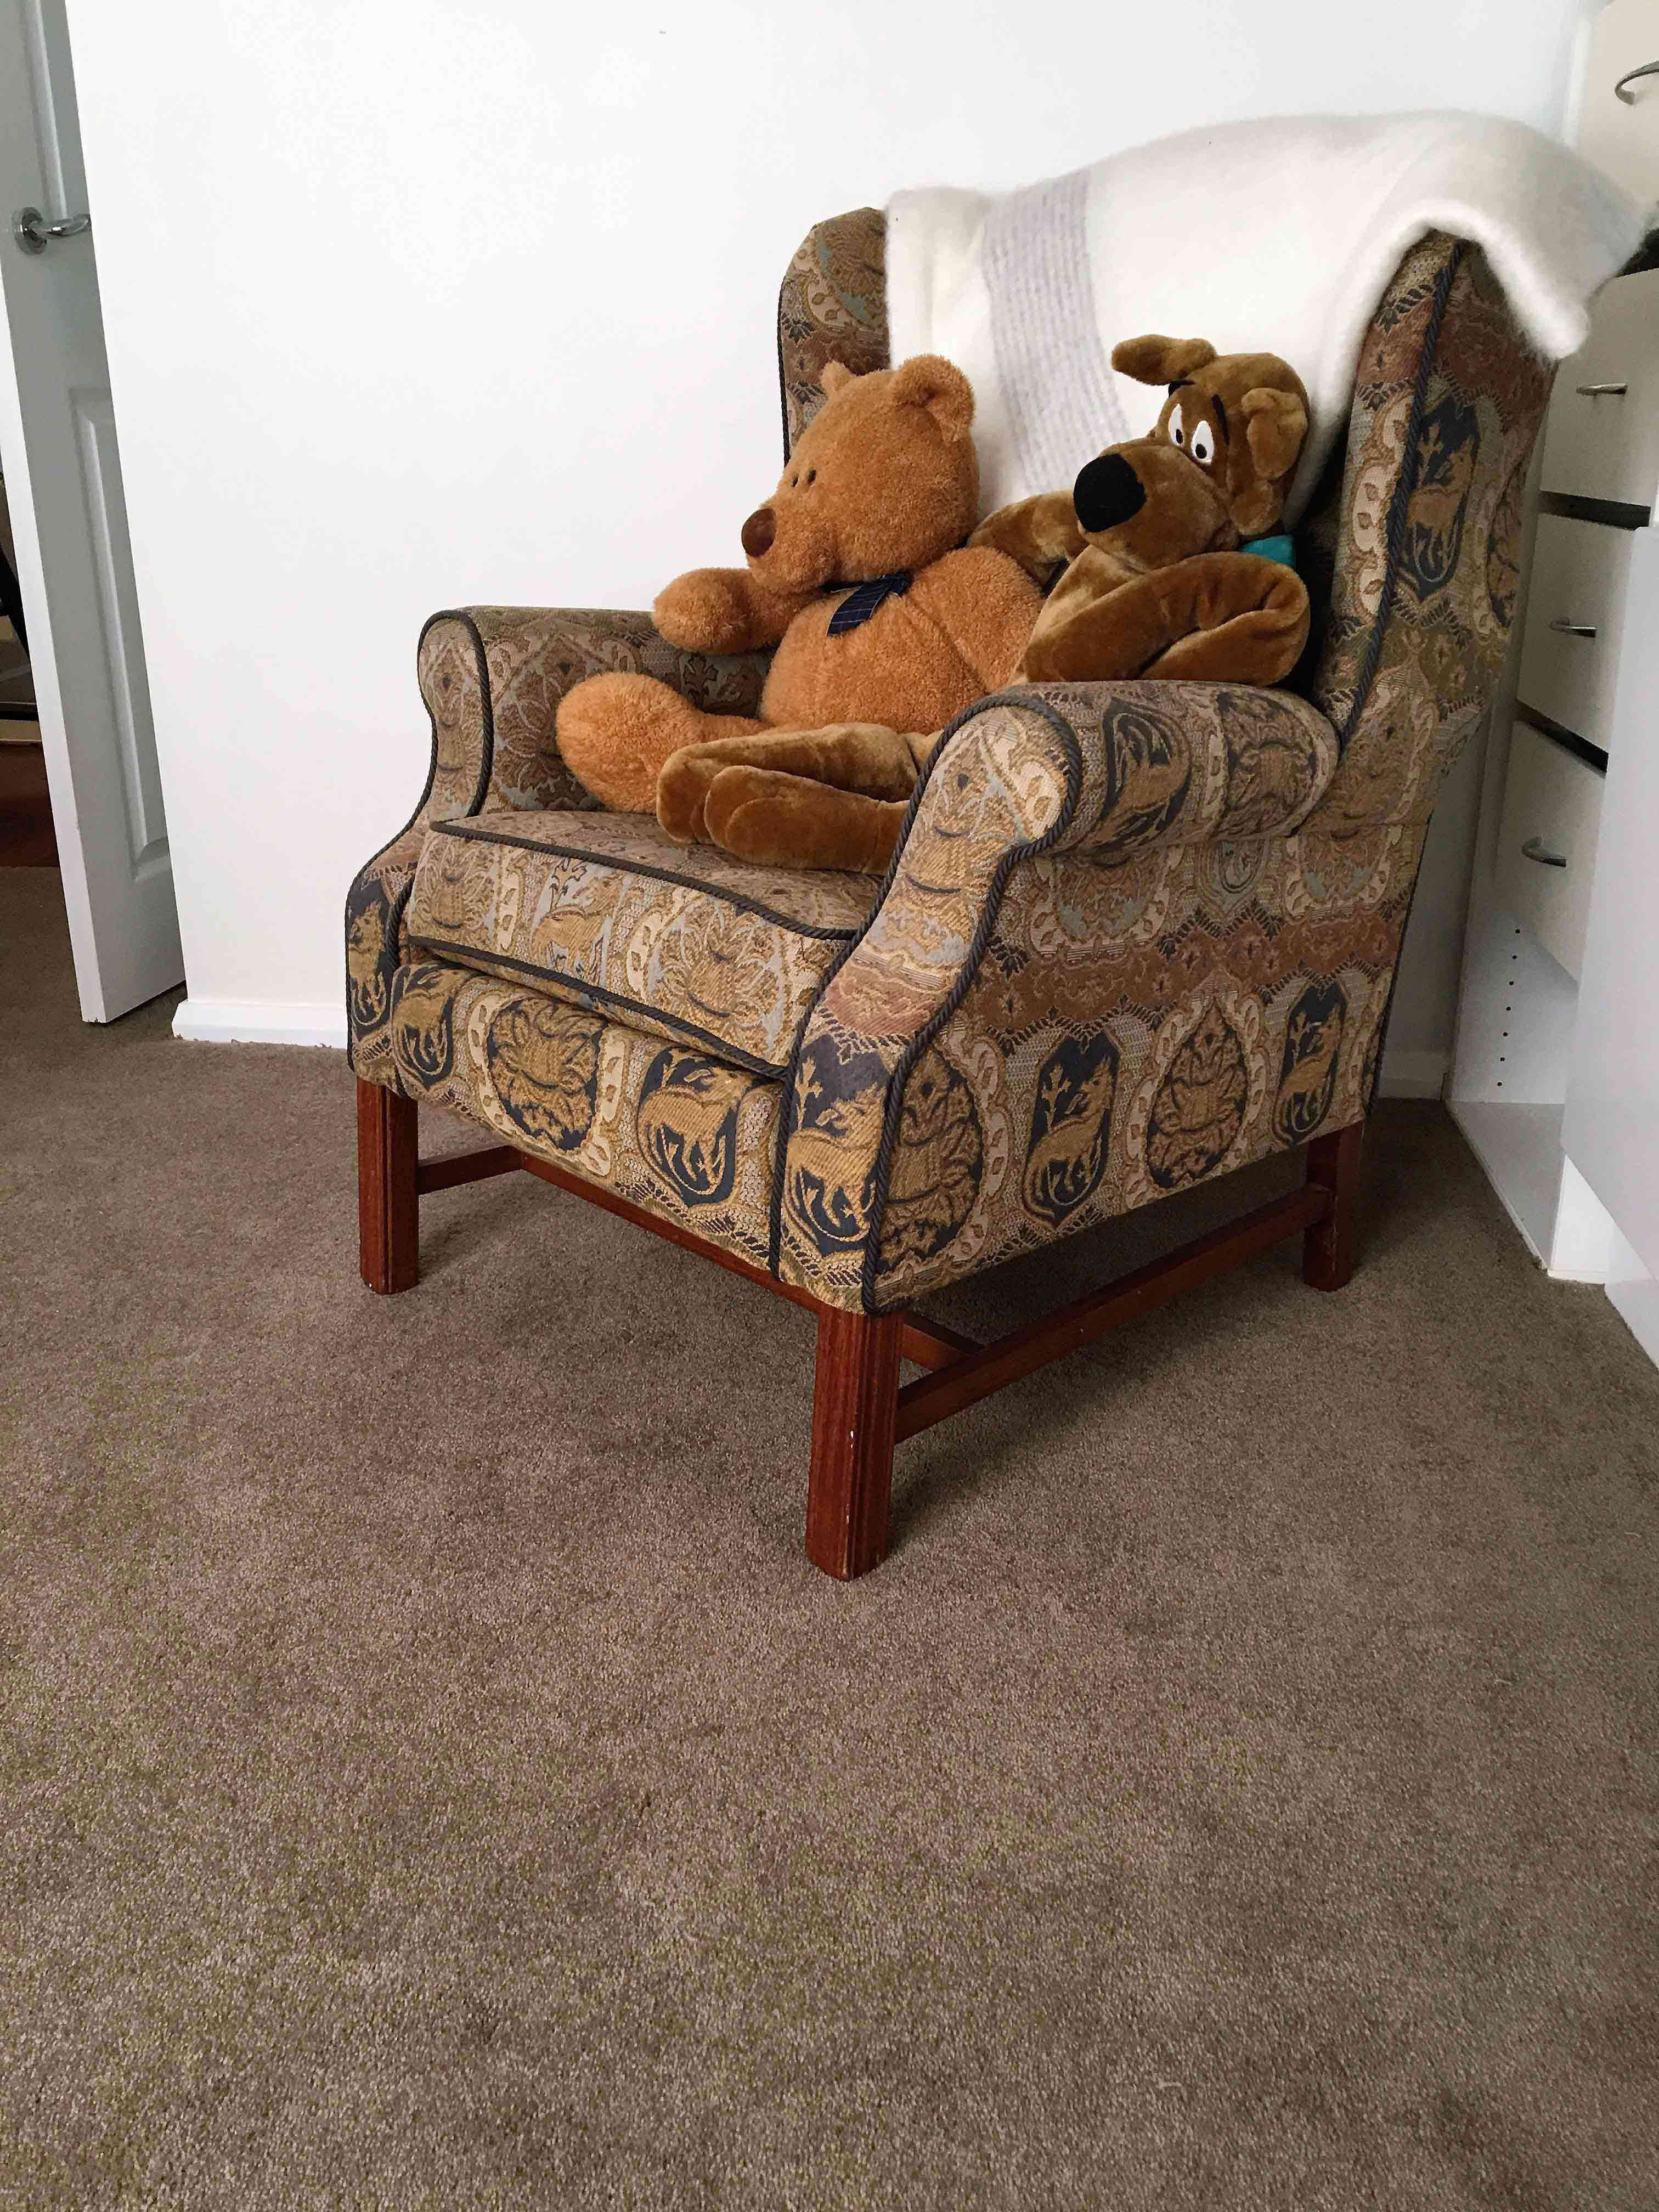 55 Floorz Carpet Installations Gold Coast Brown Bear on Chair